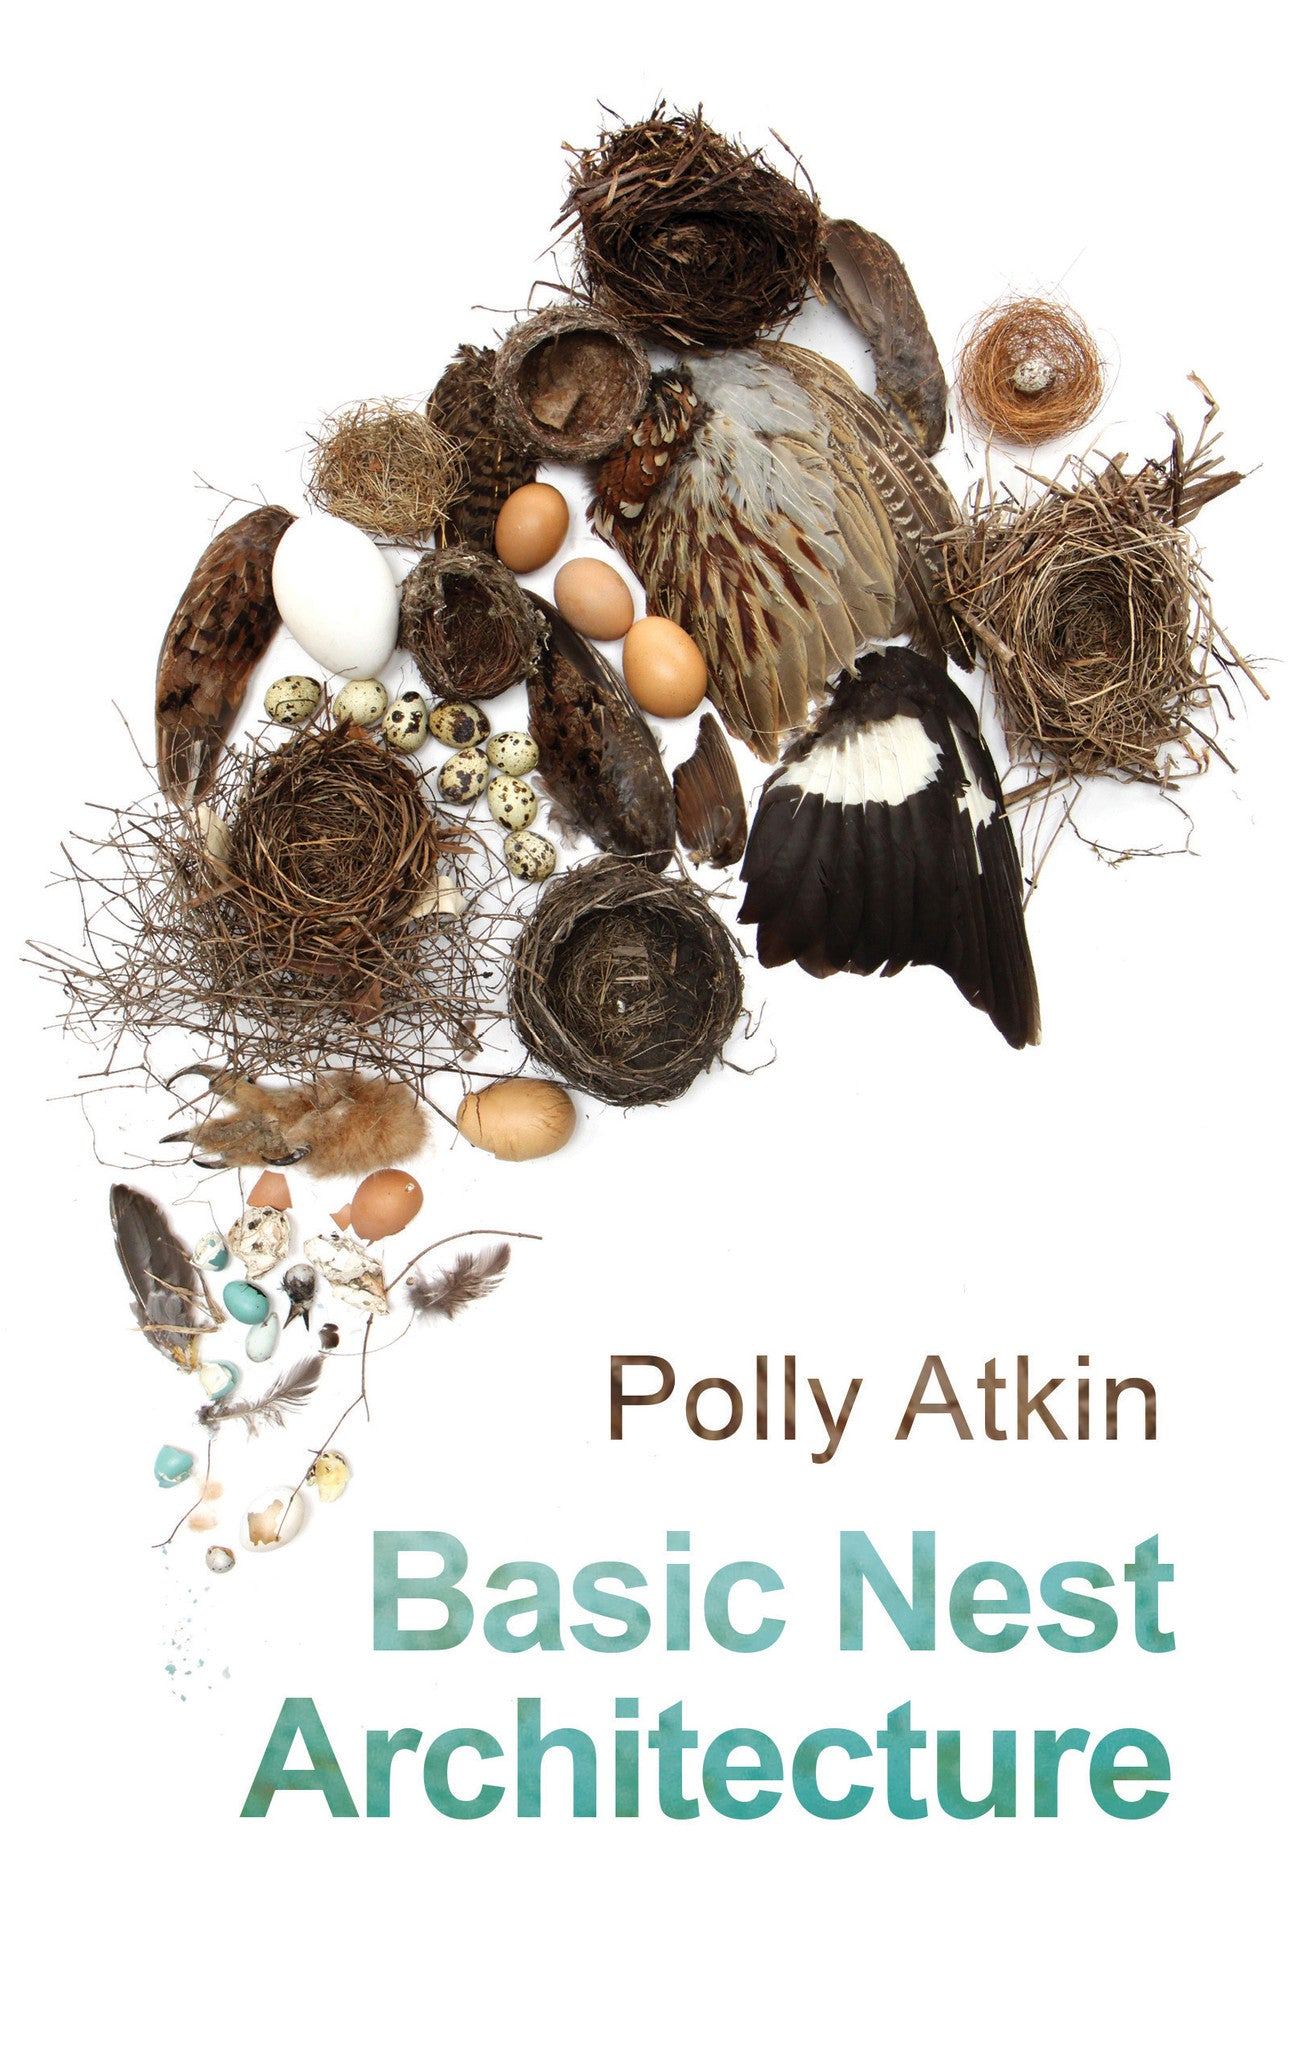 Basic Nest Architecture